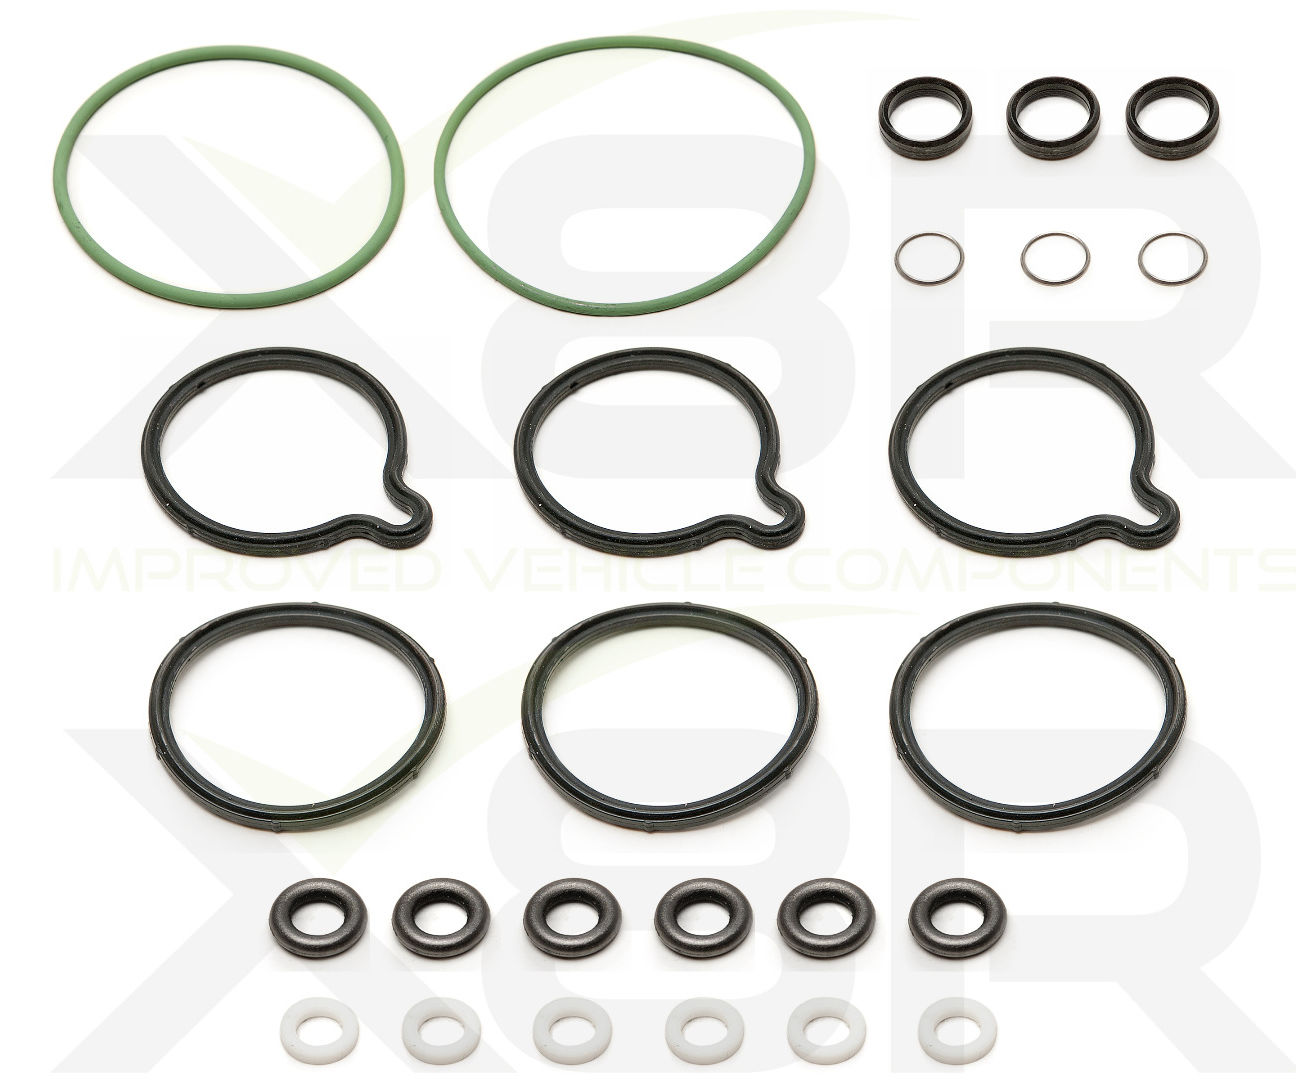 Universal Bosch Common Rail CP1 High Pressure Fuel Pump O-Rings Seal Seals Repair Fix Kit Leaks Instructions Install Guide